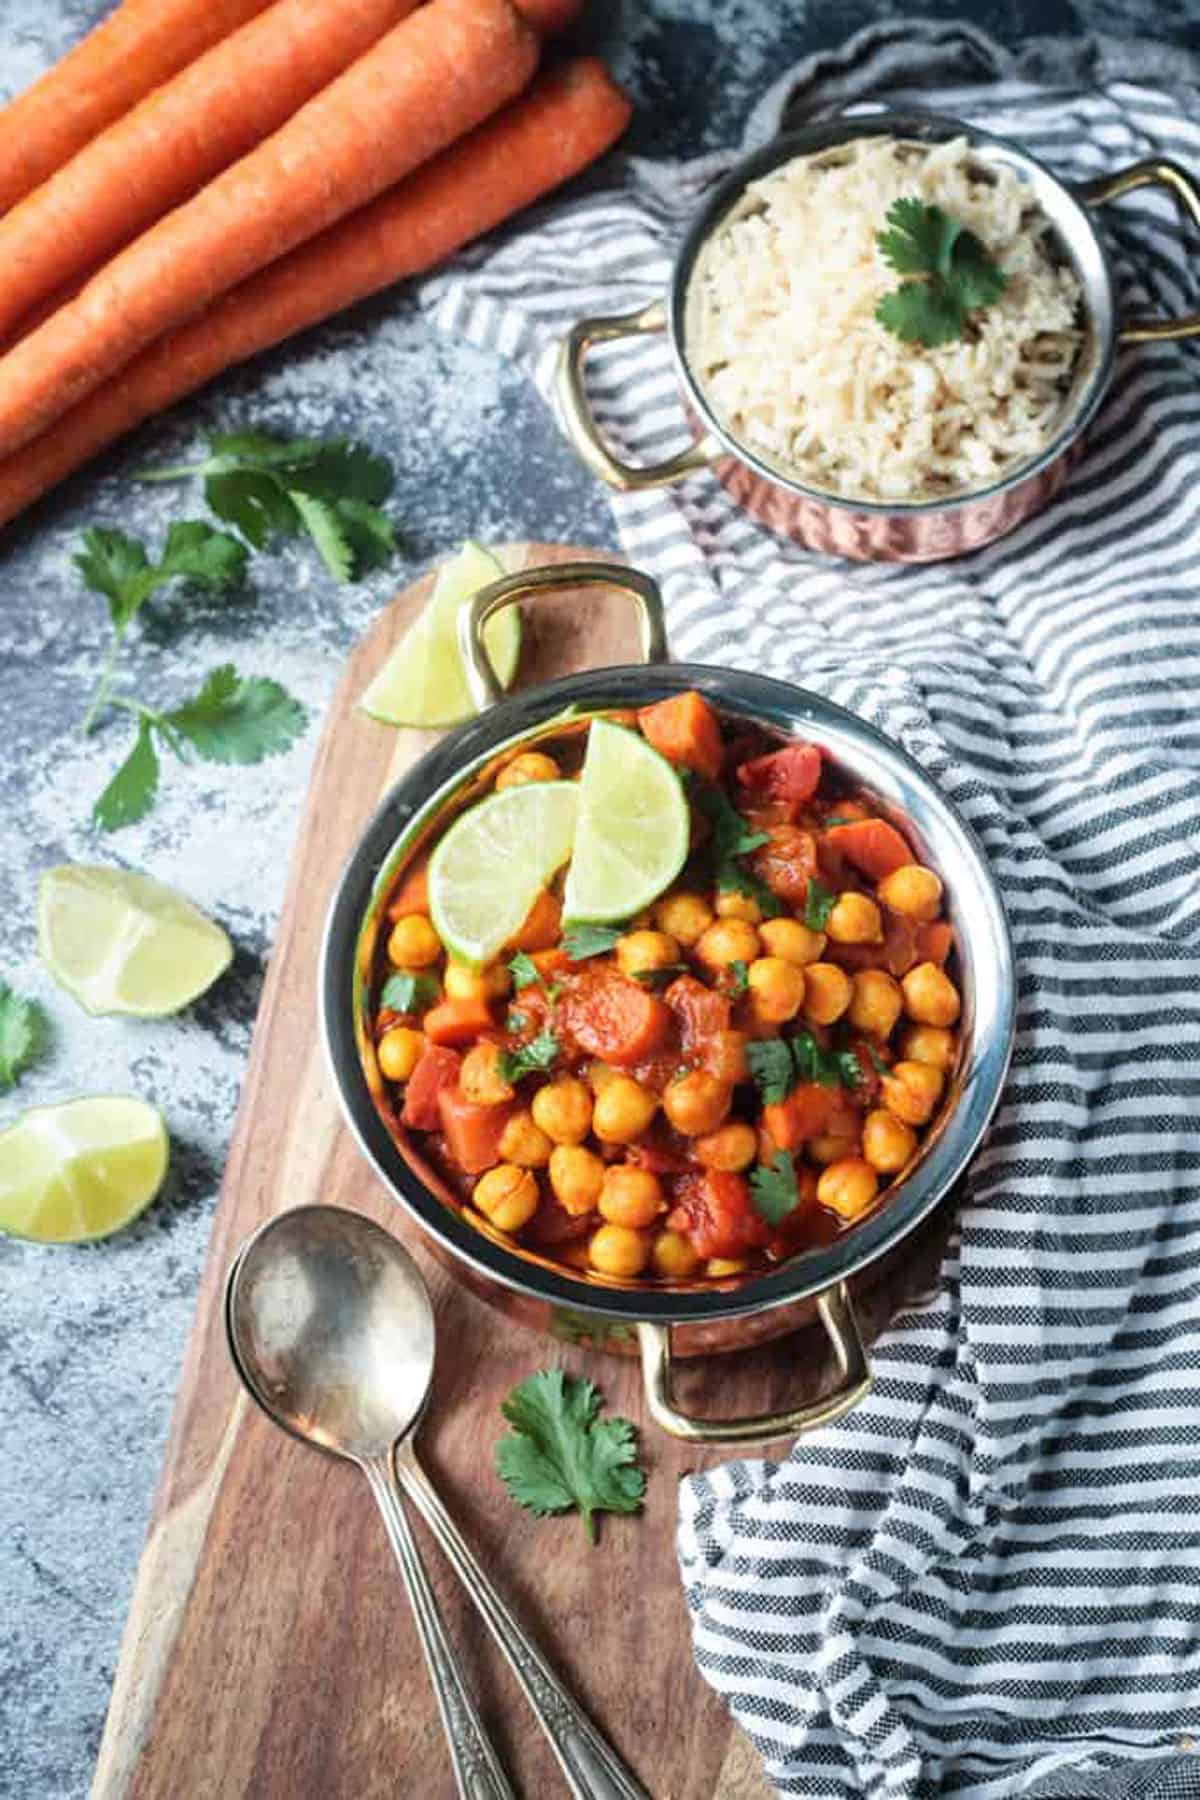 Pot of chickpea stew with two lime wedges on a wooden board.